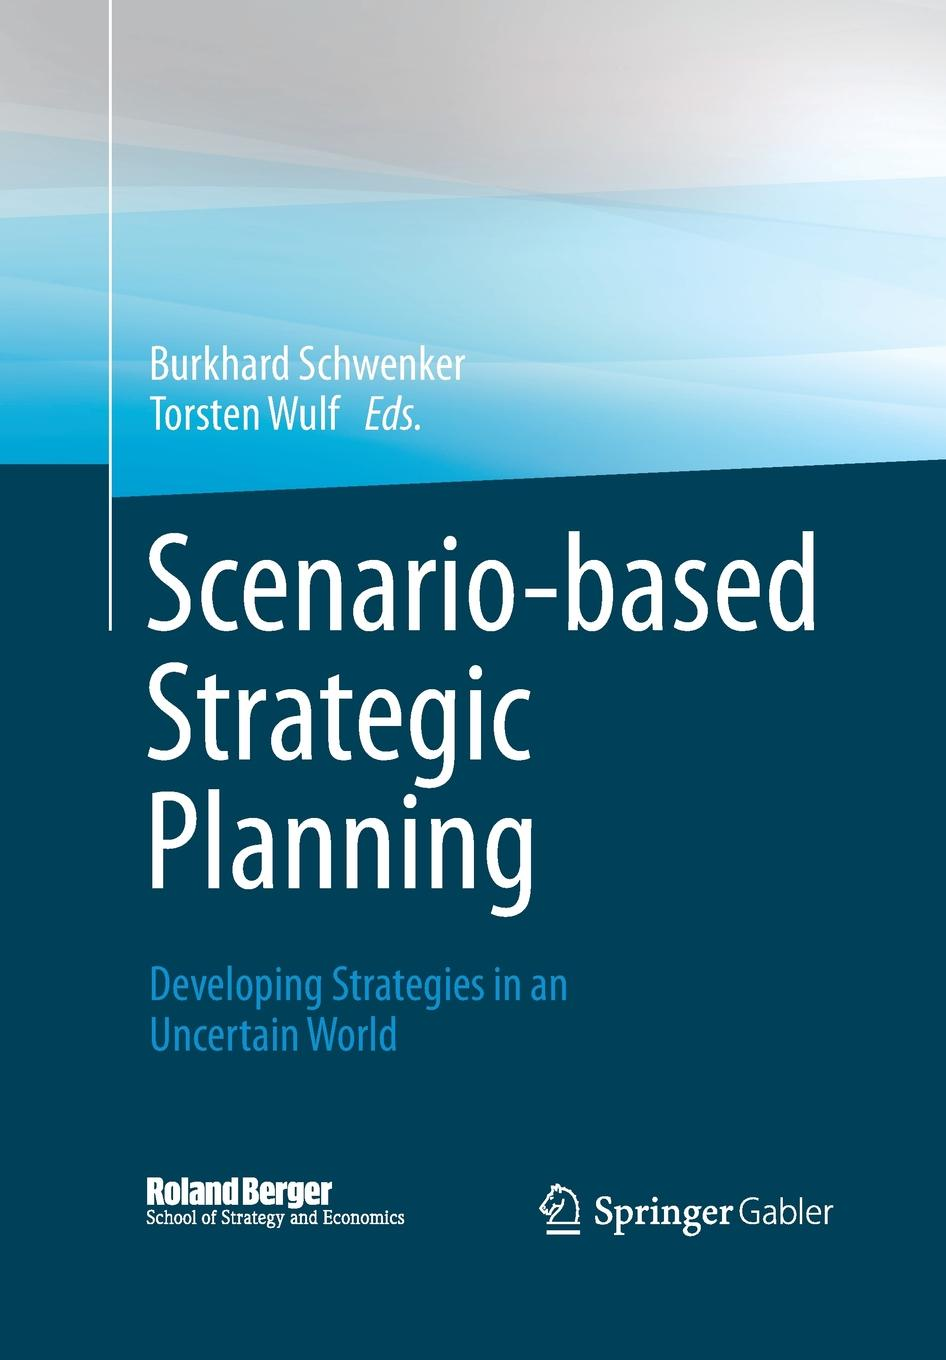 лучшая цена Scenario-based Strategic Planning. Developing Strategies in an Uncertain World